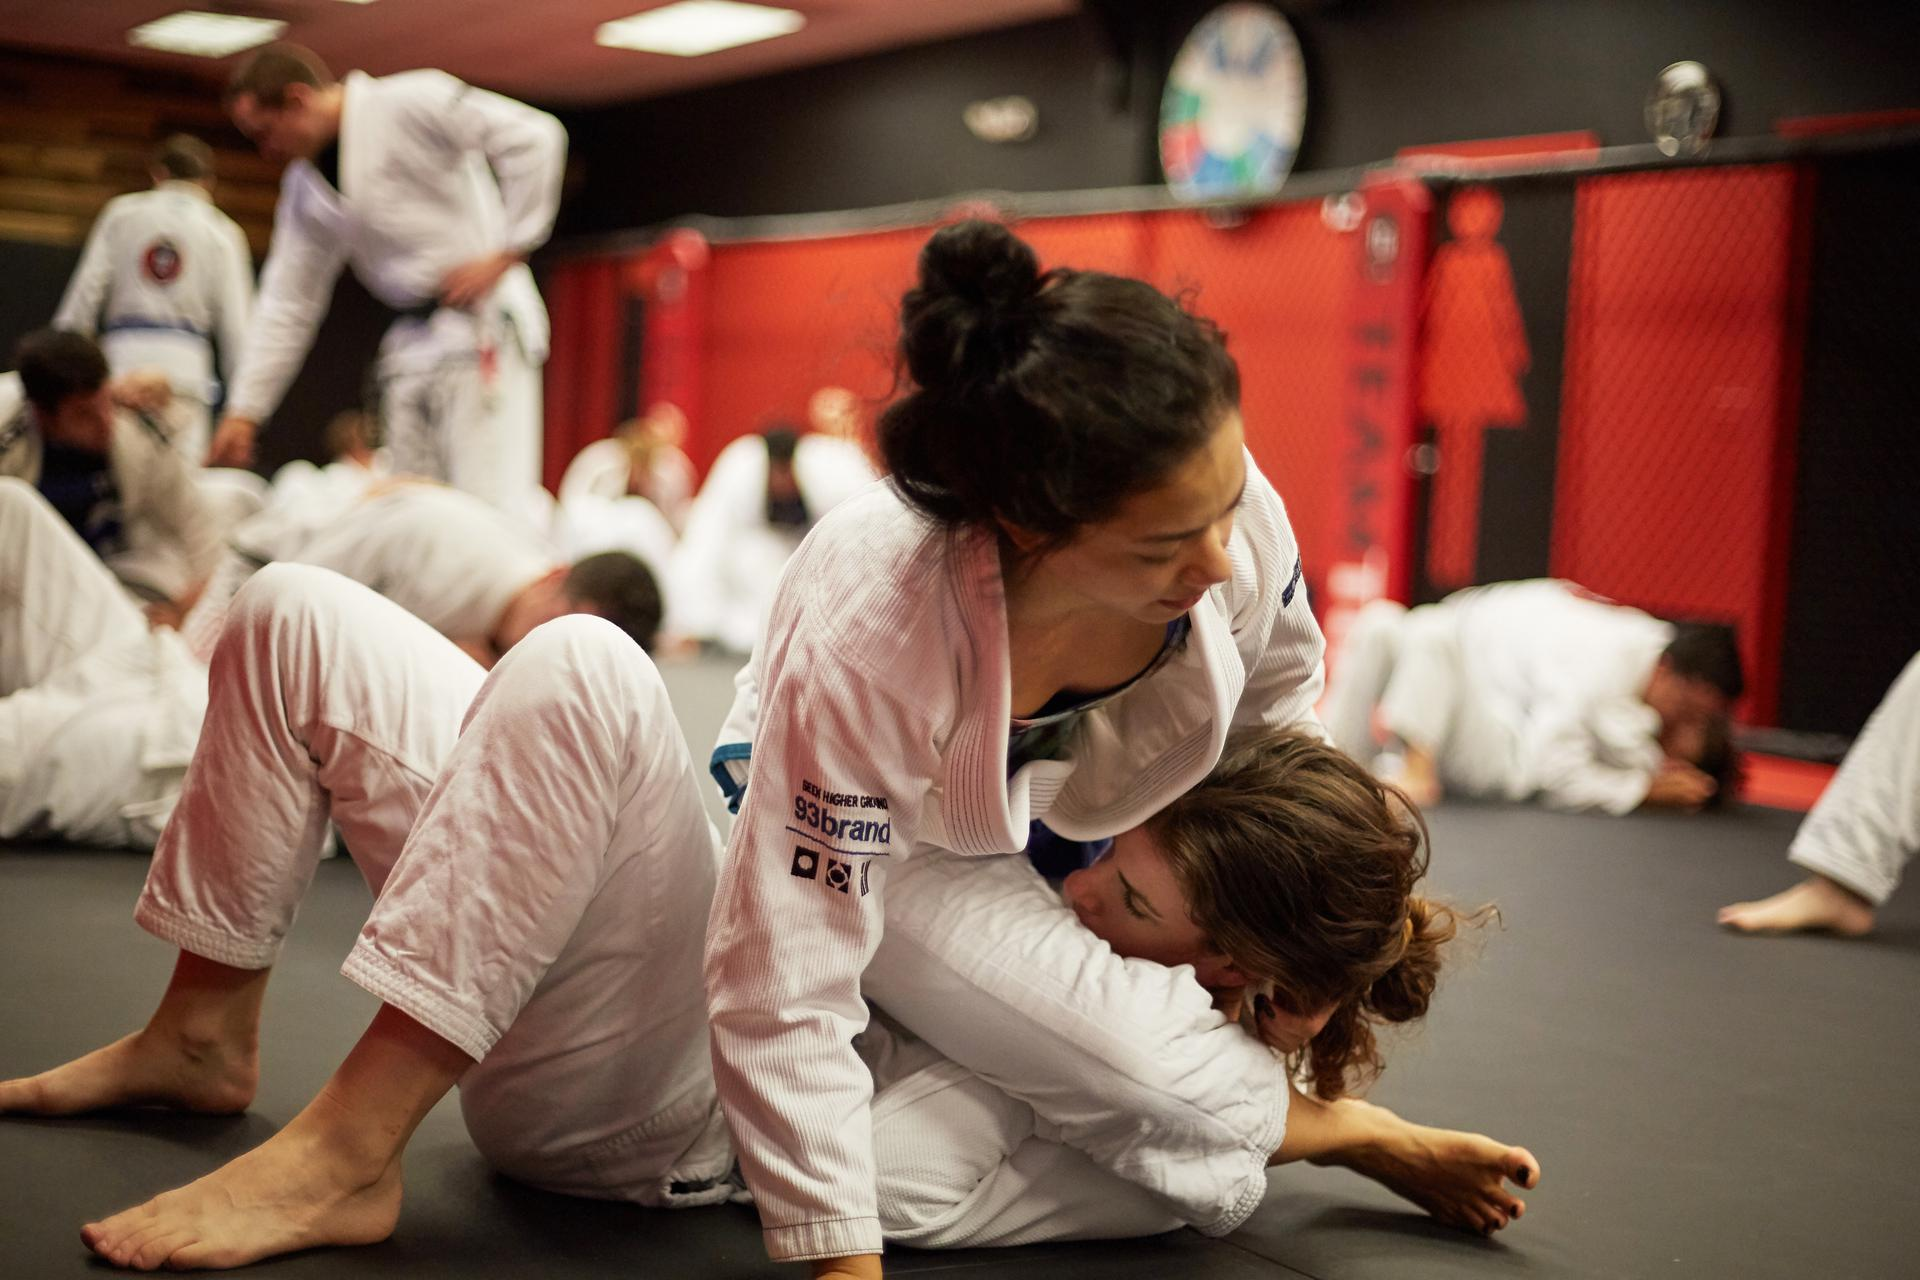 a girls bjj class in full swing as two girl practice a straight armlock